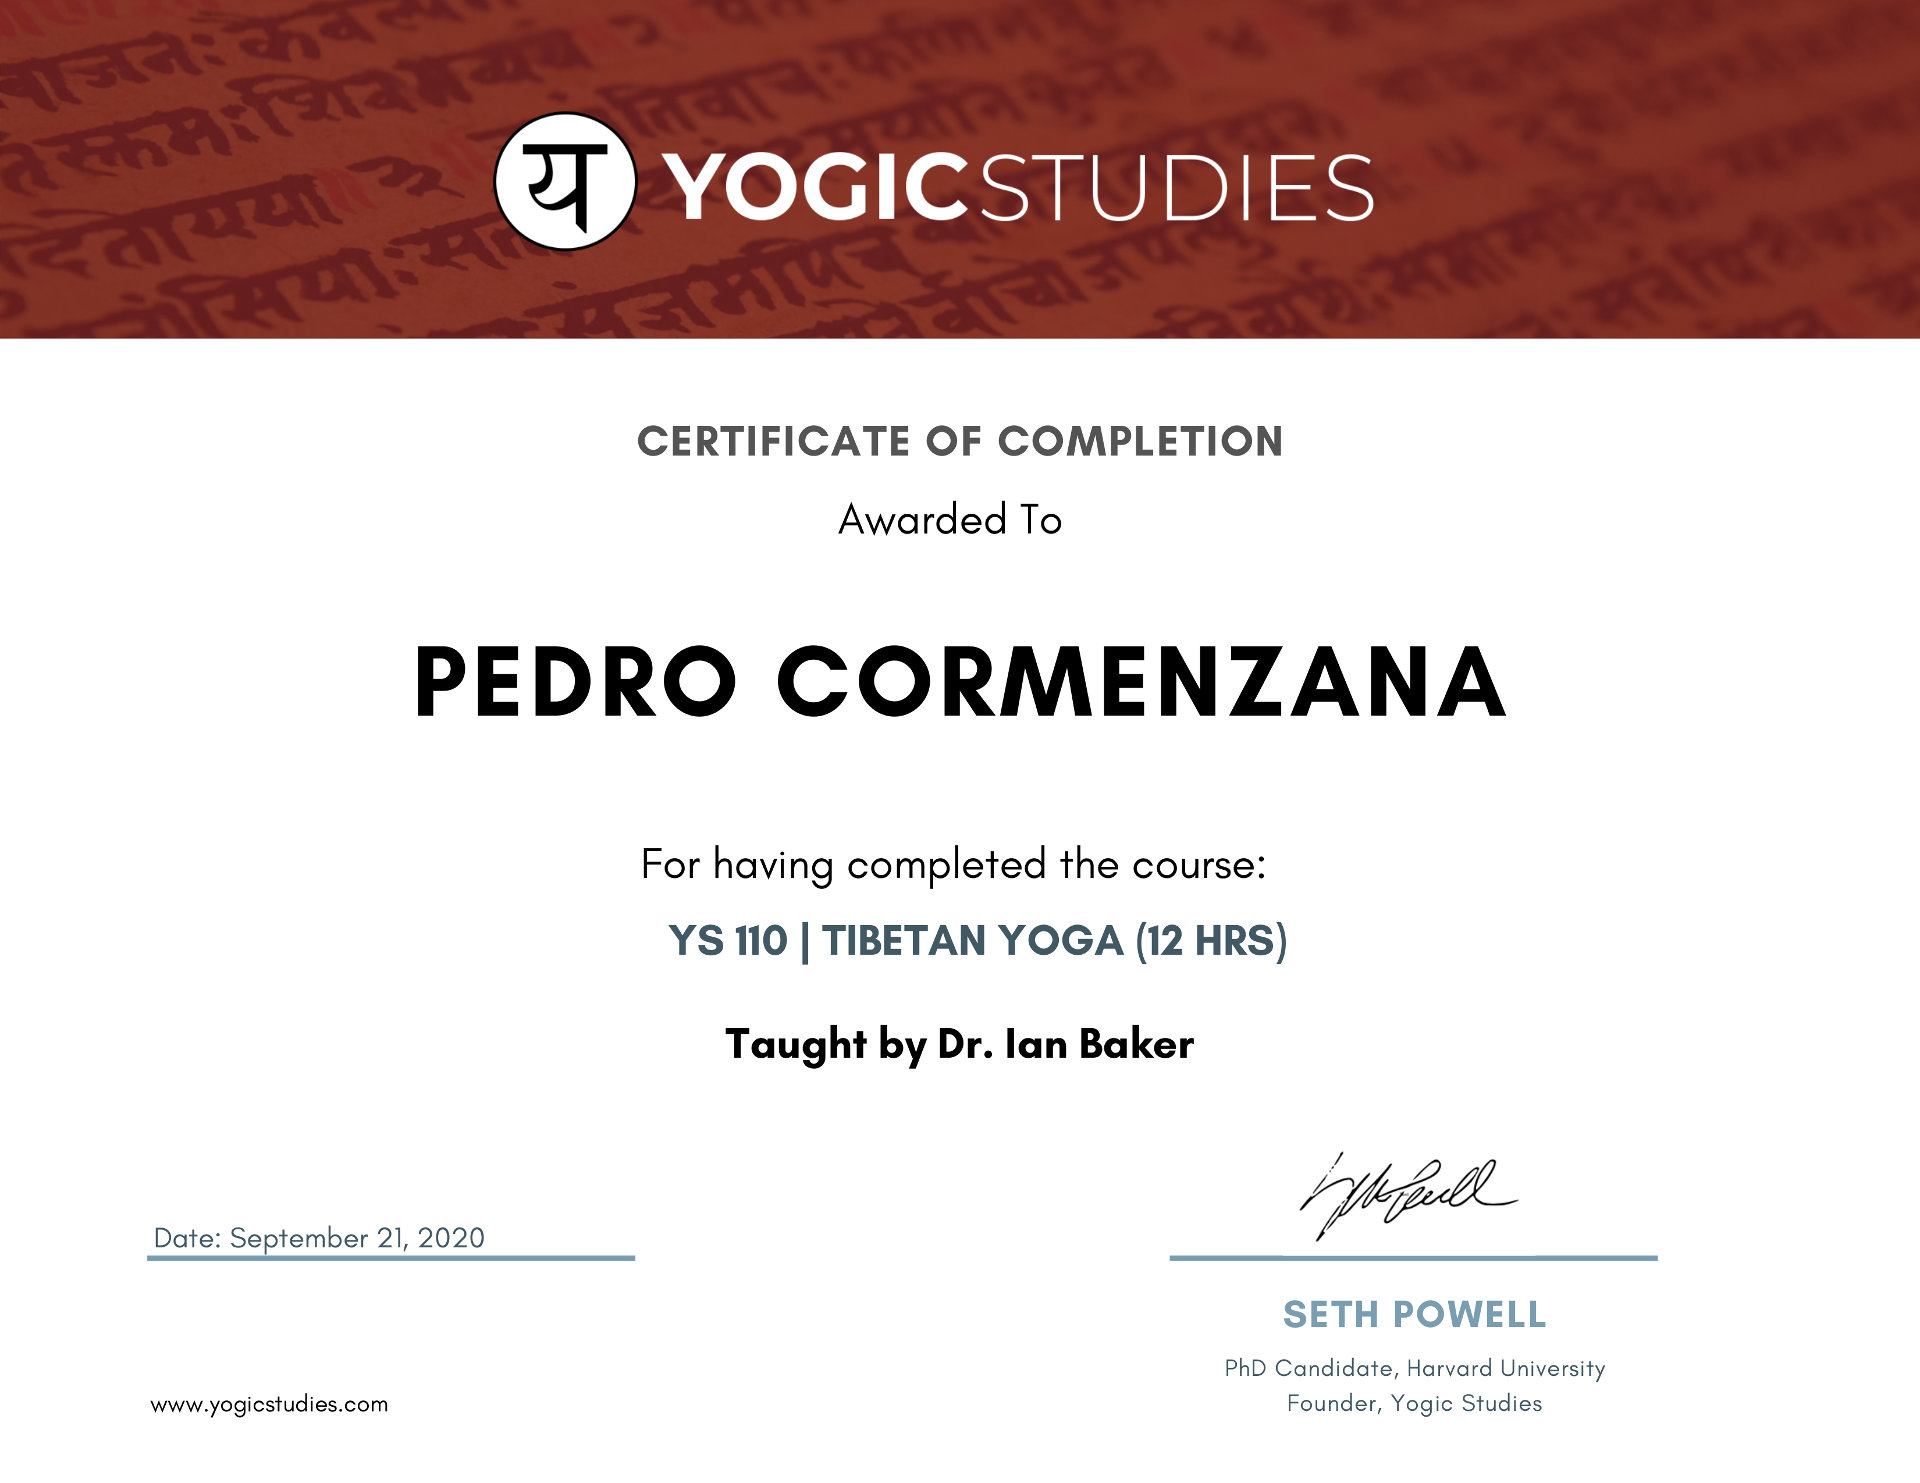 YS Certificate of Completion YS110 - Tibetan Yoga